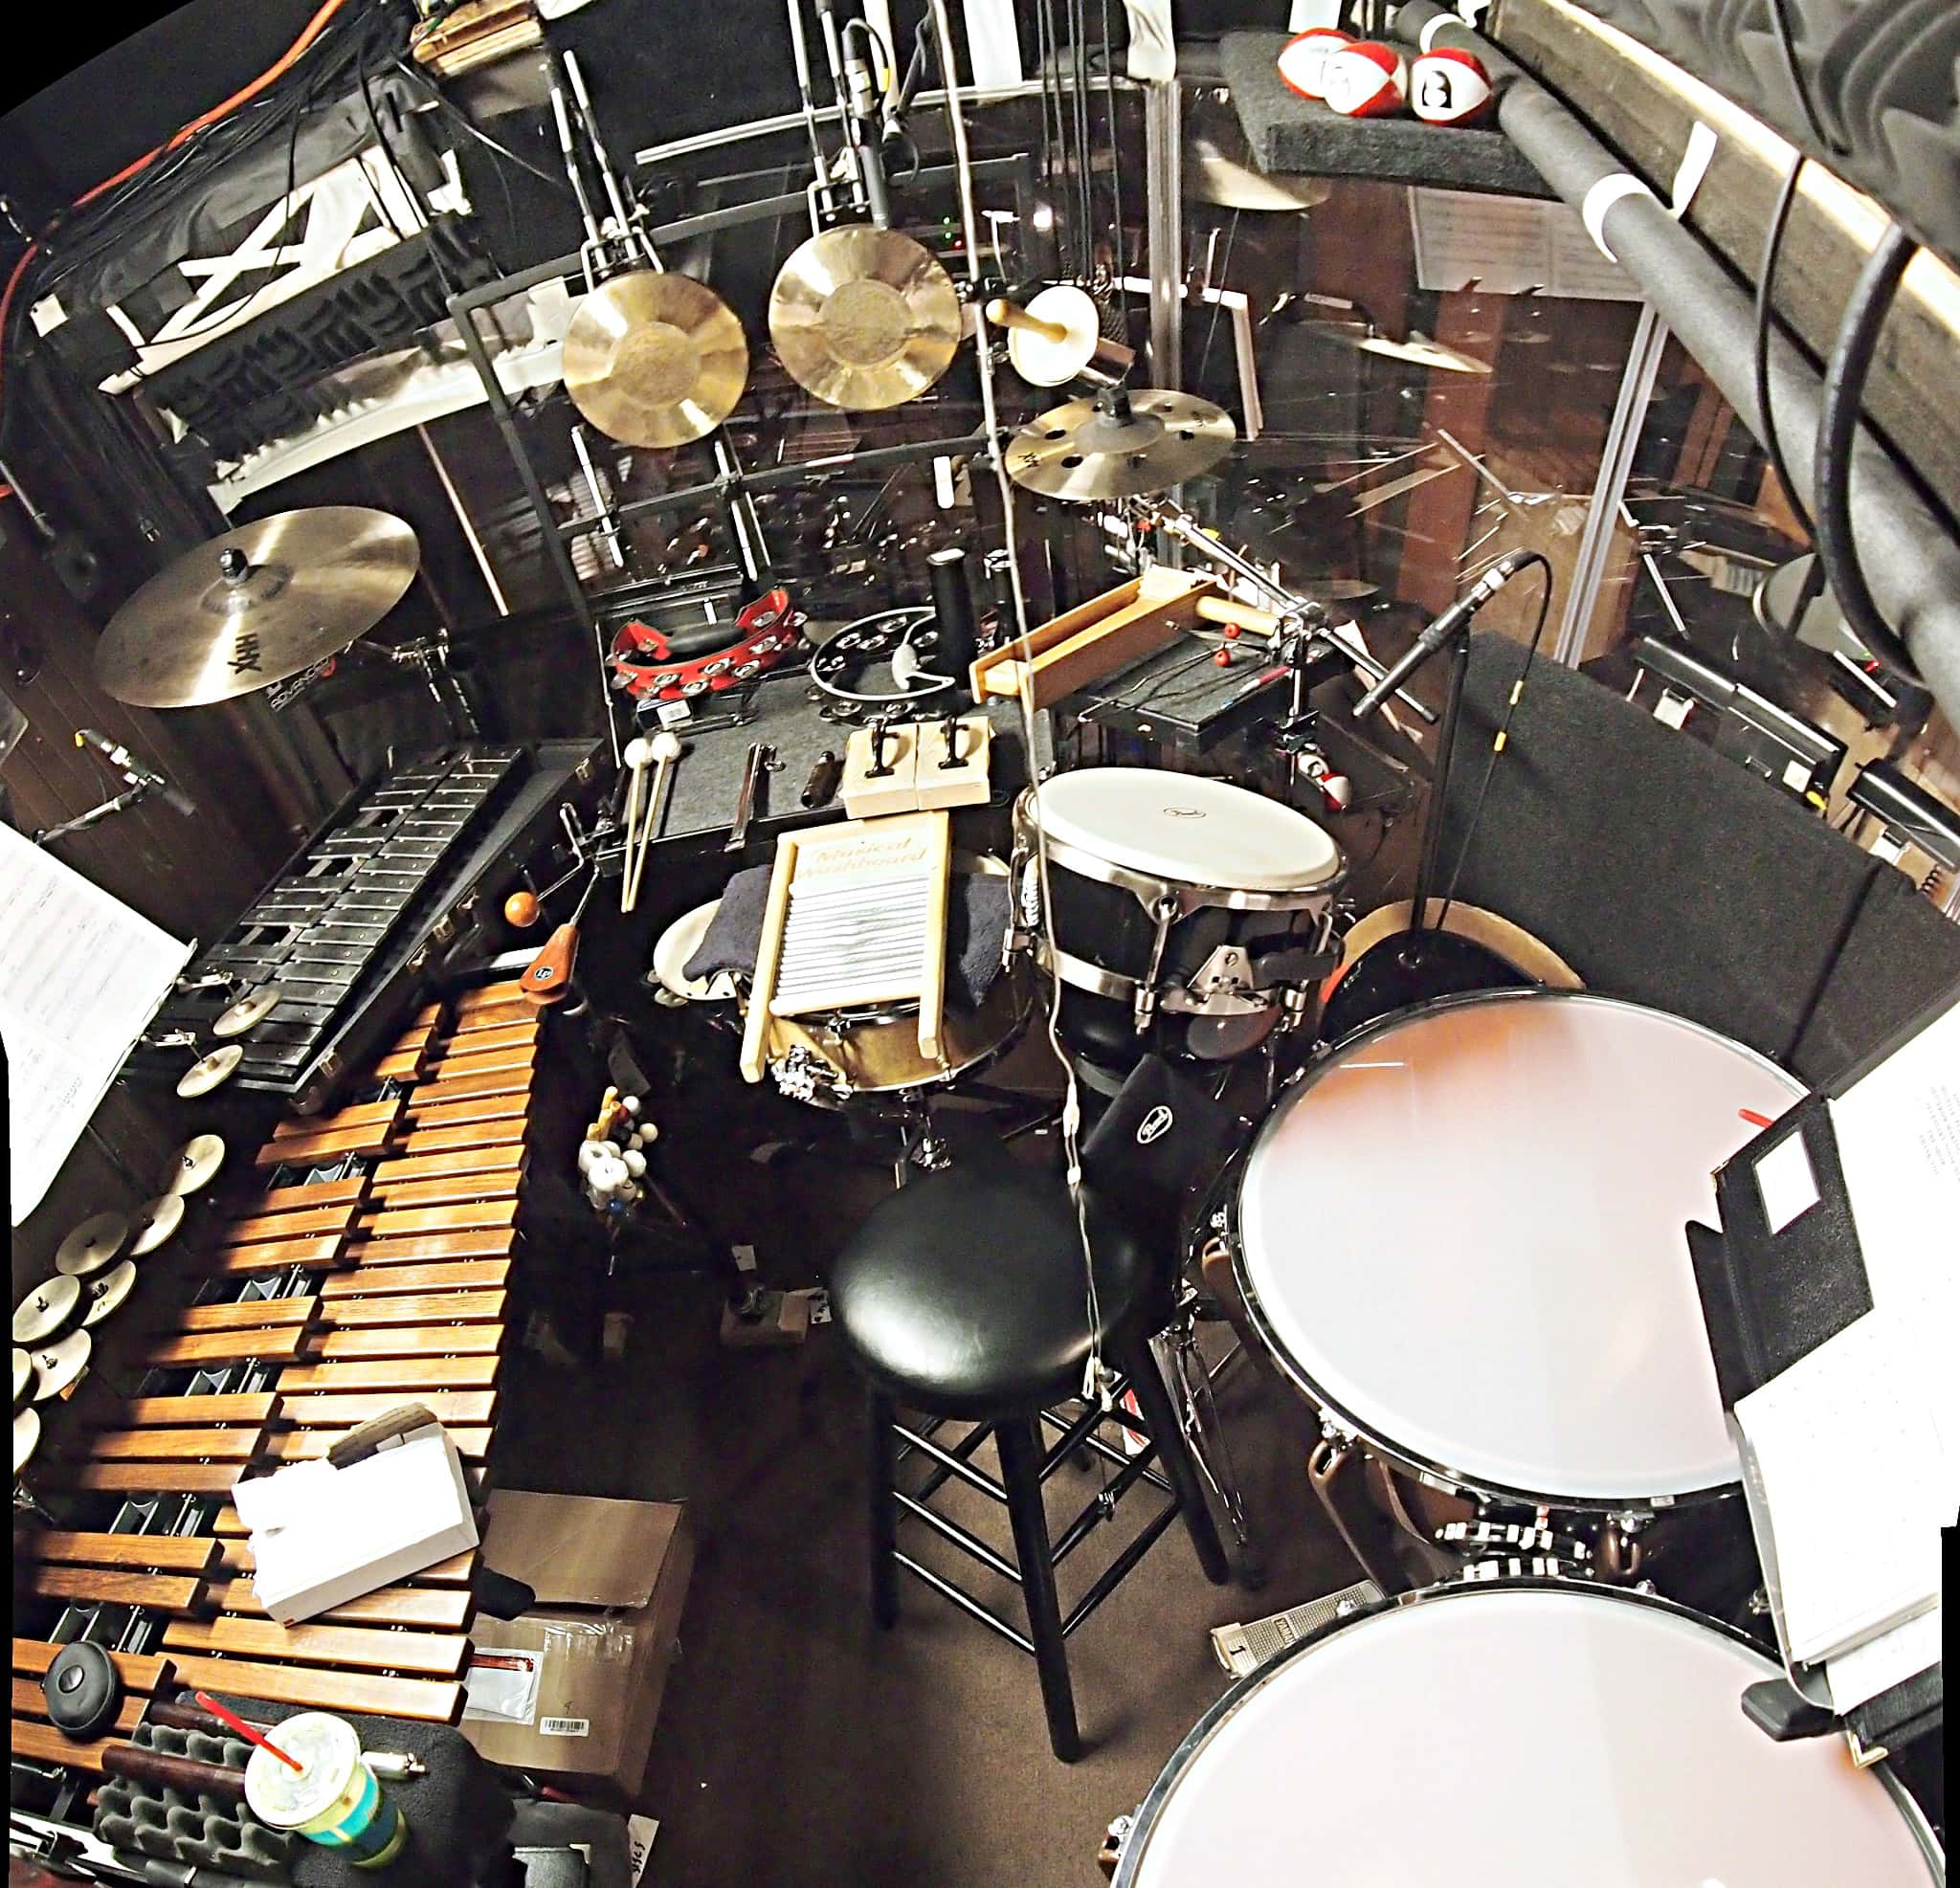 Sean Ritenauer's percussion setup for the Broadway revival of Pippin at the Music Box Theatre.